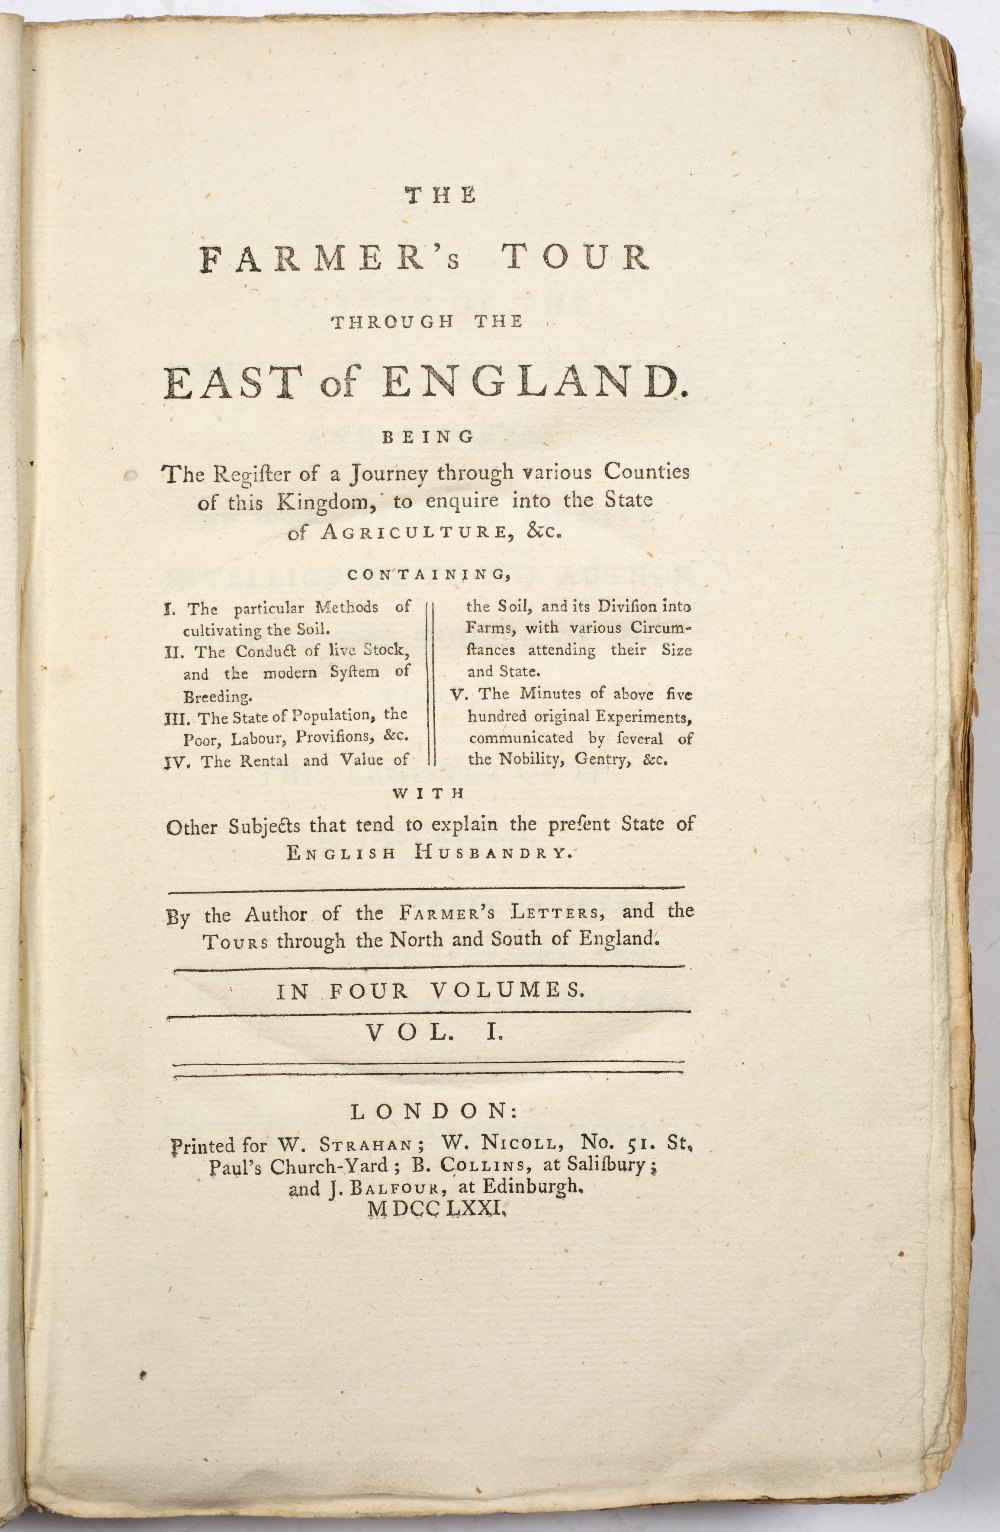 YOUNG, Arthur (1741-1820) and STRAHAN, William (1715-1785), 'The Farmer's Tour throughout the East